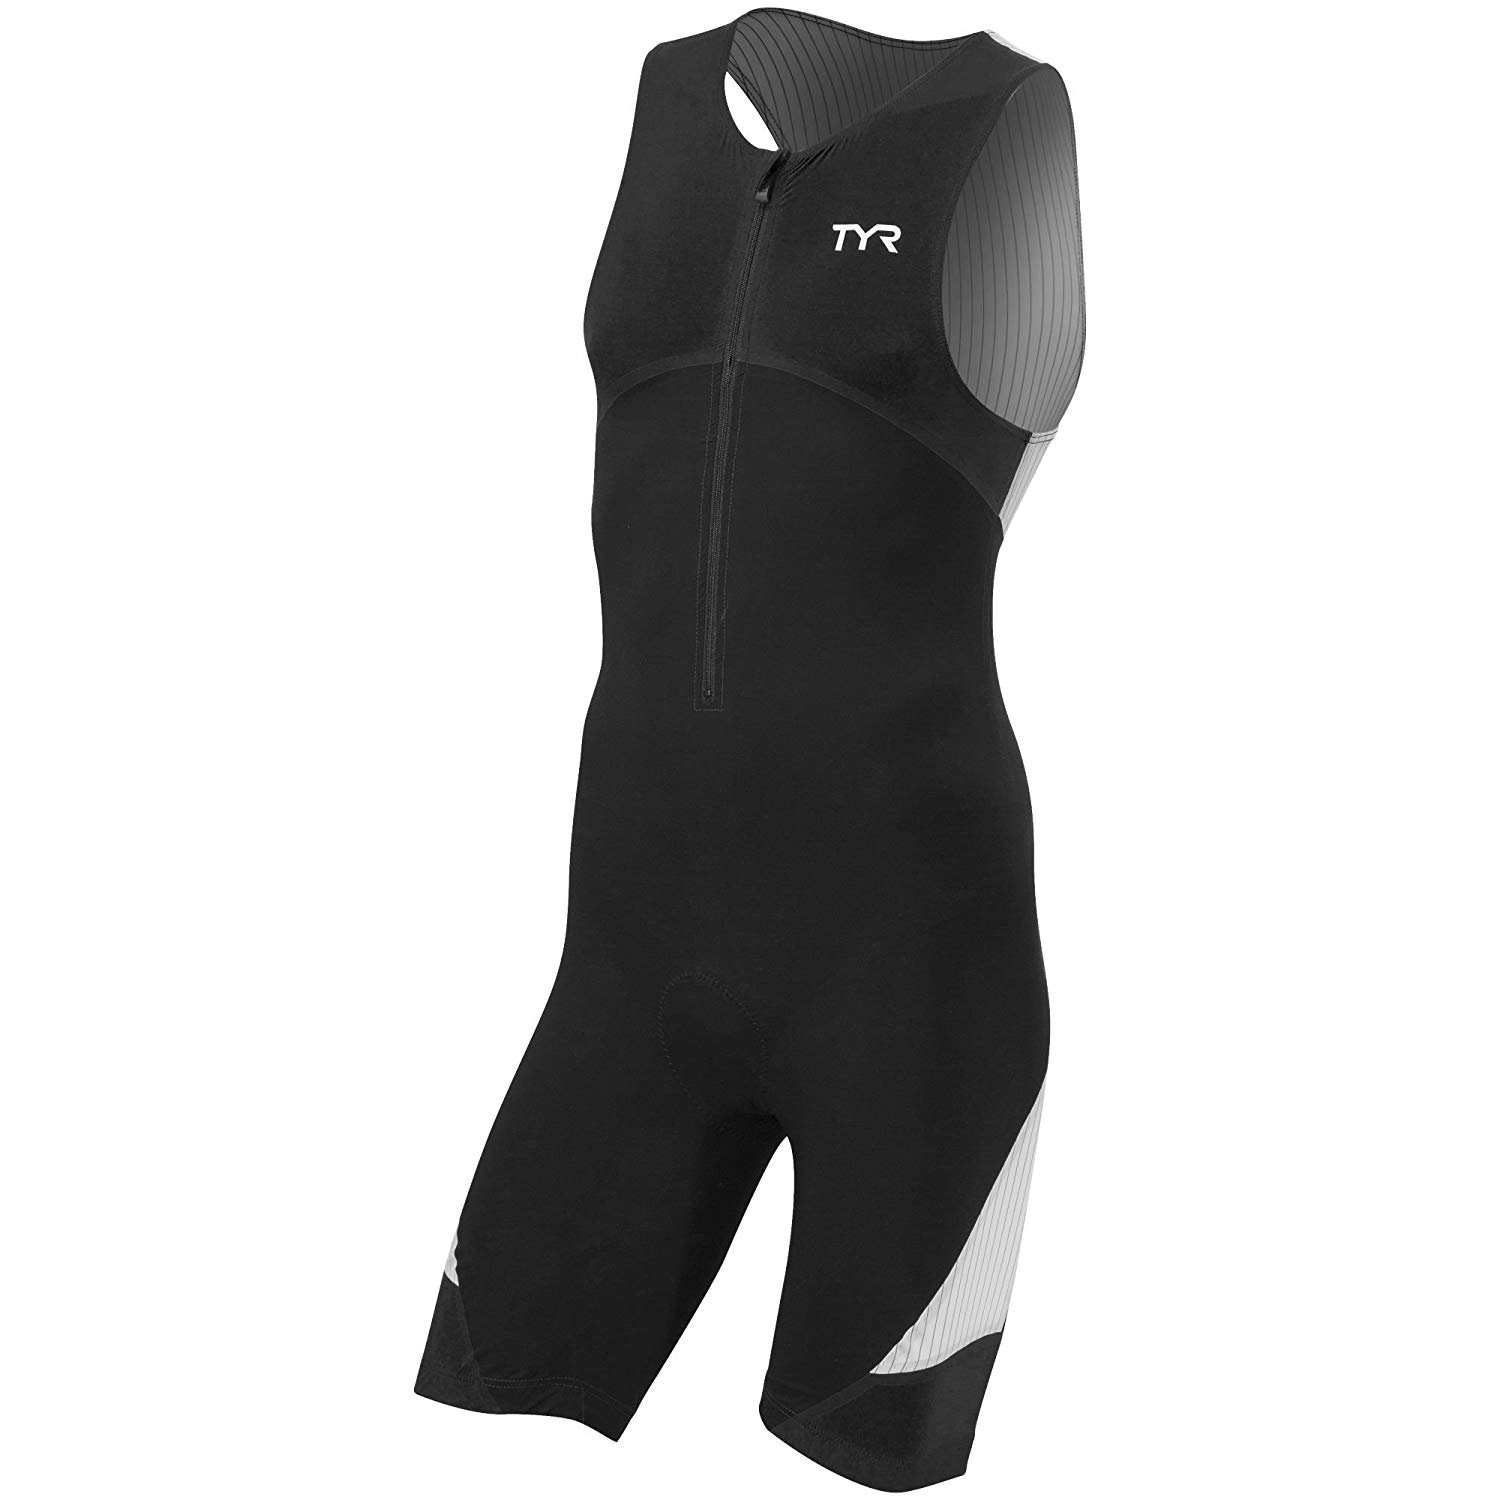 261209deeaa Get Quotations · TYR Men s Carbon Padded Front Zip Tri Suit